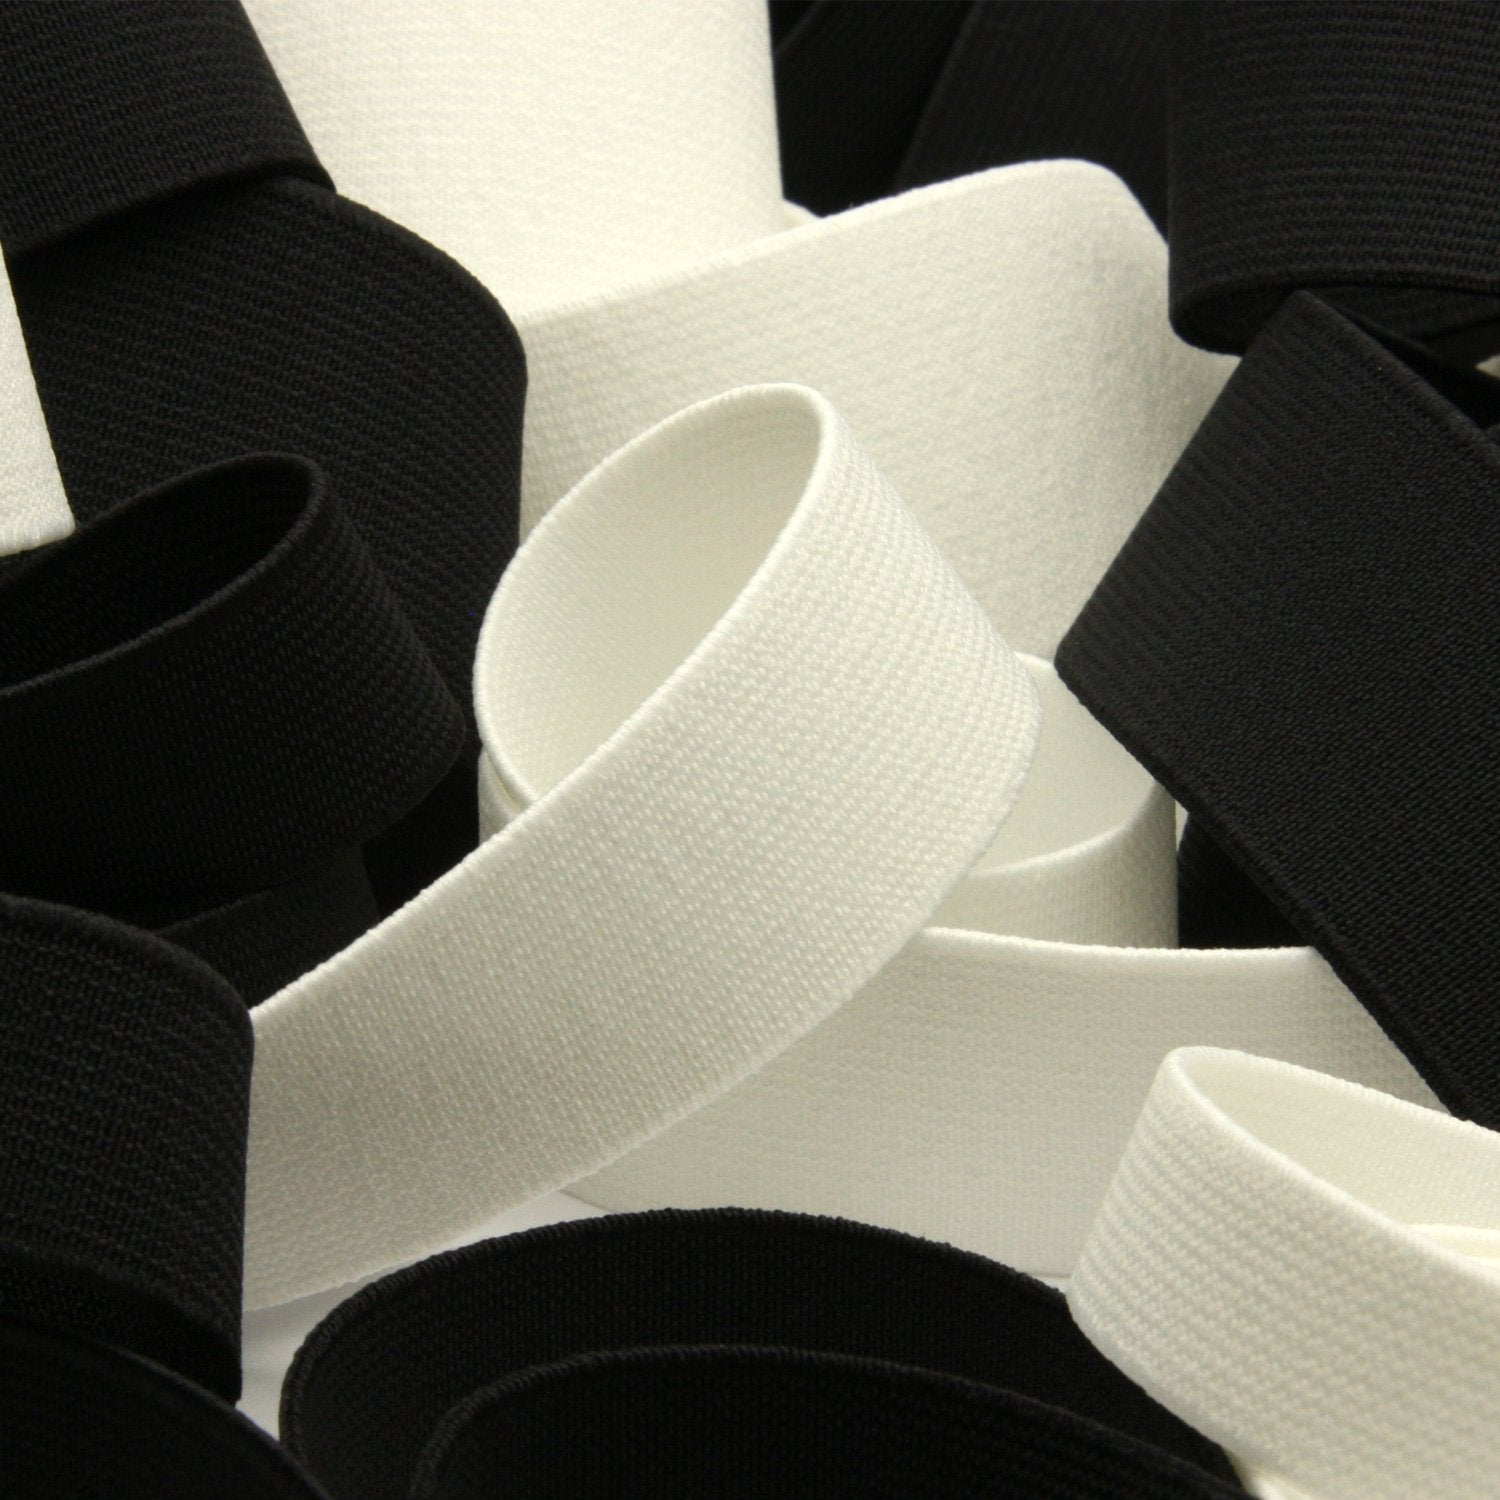 FUJIYAMA RIBBON [Wholesale] Hard Type Inside Belt 40mm 30 Meters Roll Off White